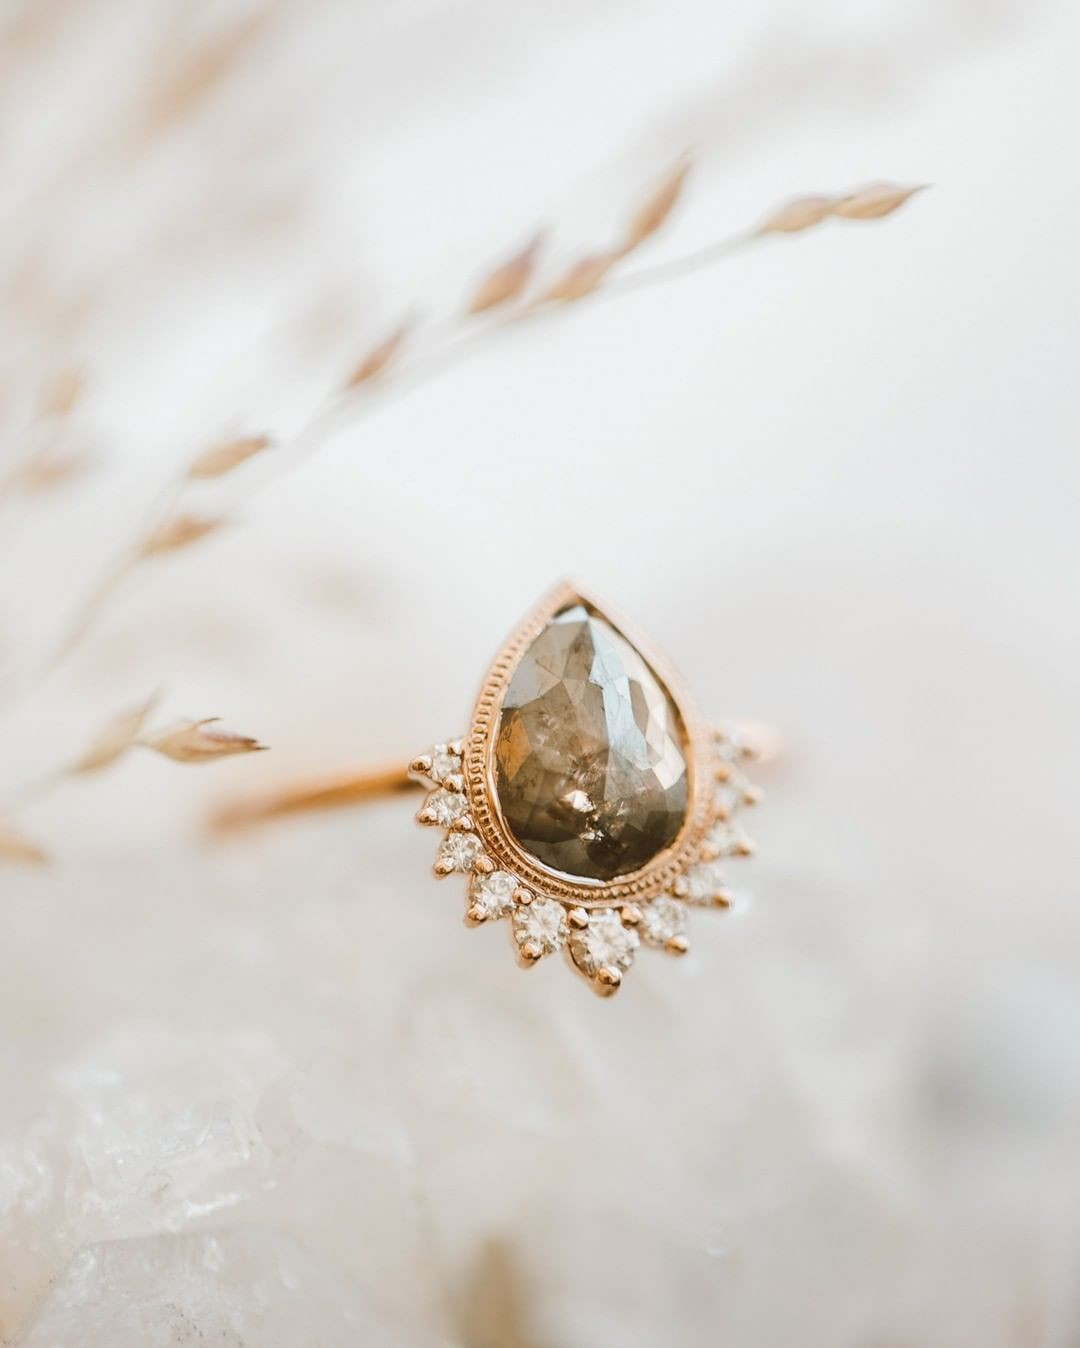 Loving this brand new pear rough cut diamond ring with a starburst diamond flare in 14k rose gold. Available now at our Tennyson boutique